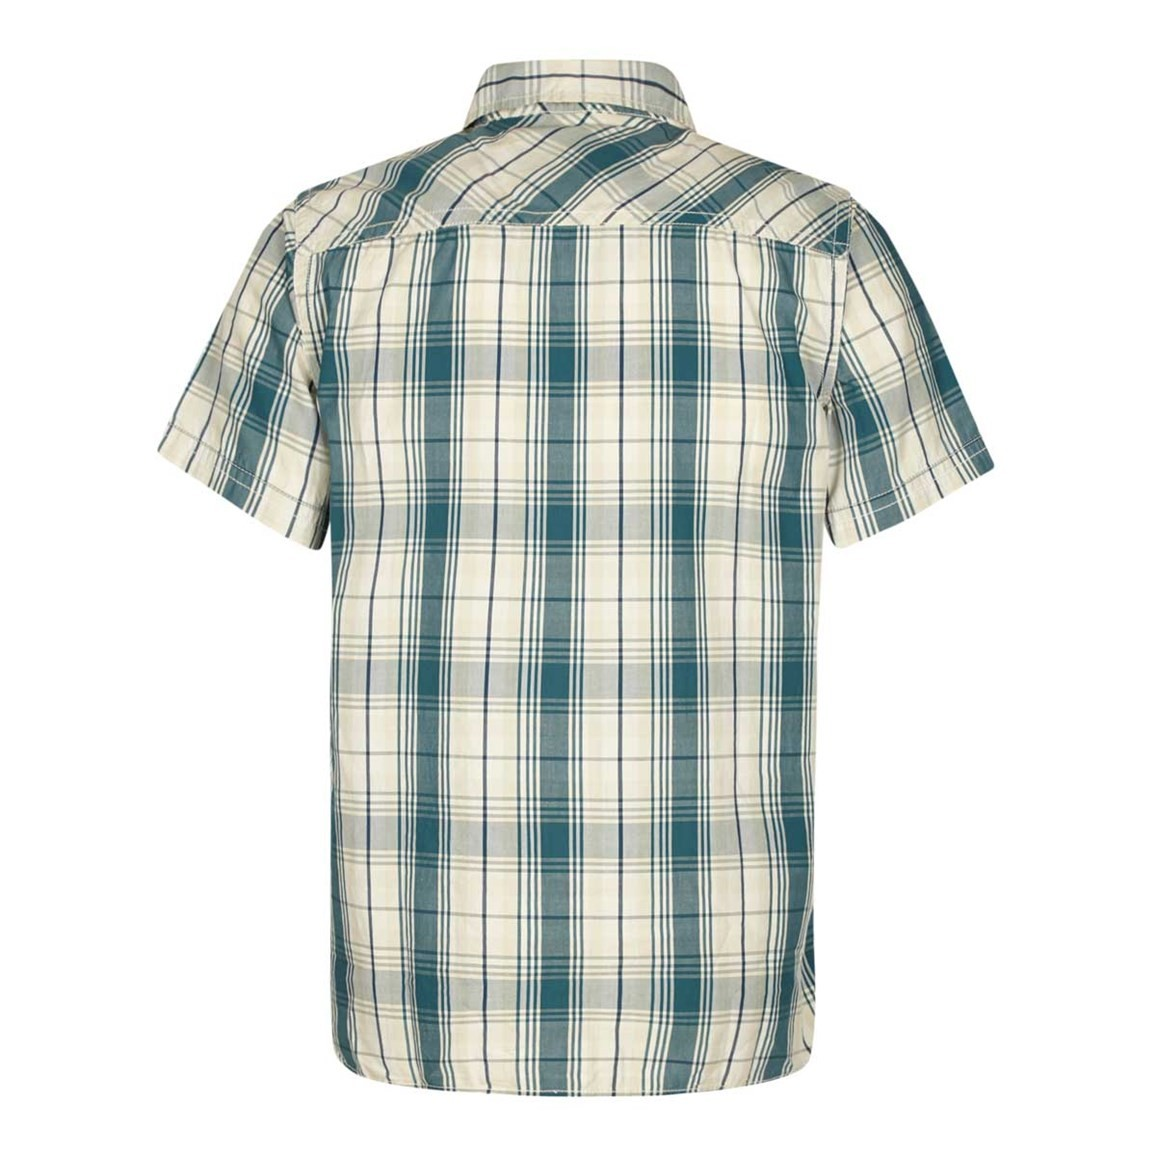 Find great deals on eBay for cotton plaid shirt. Shop with confidence.